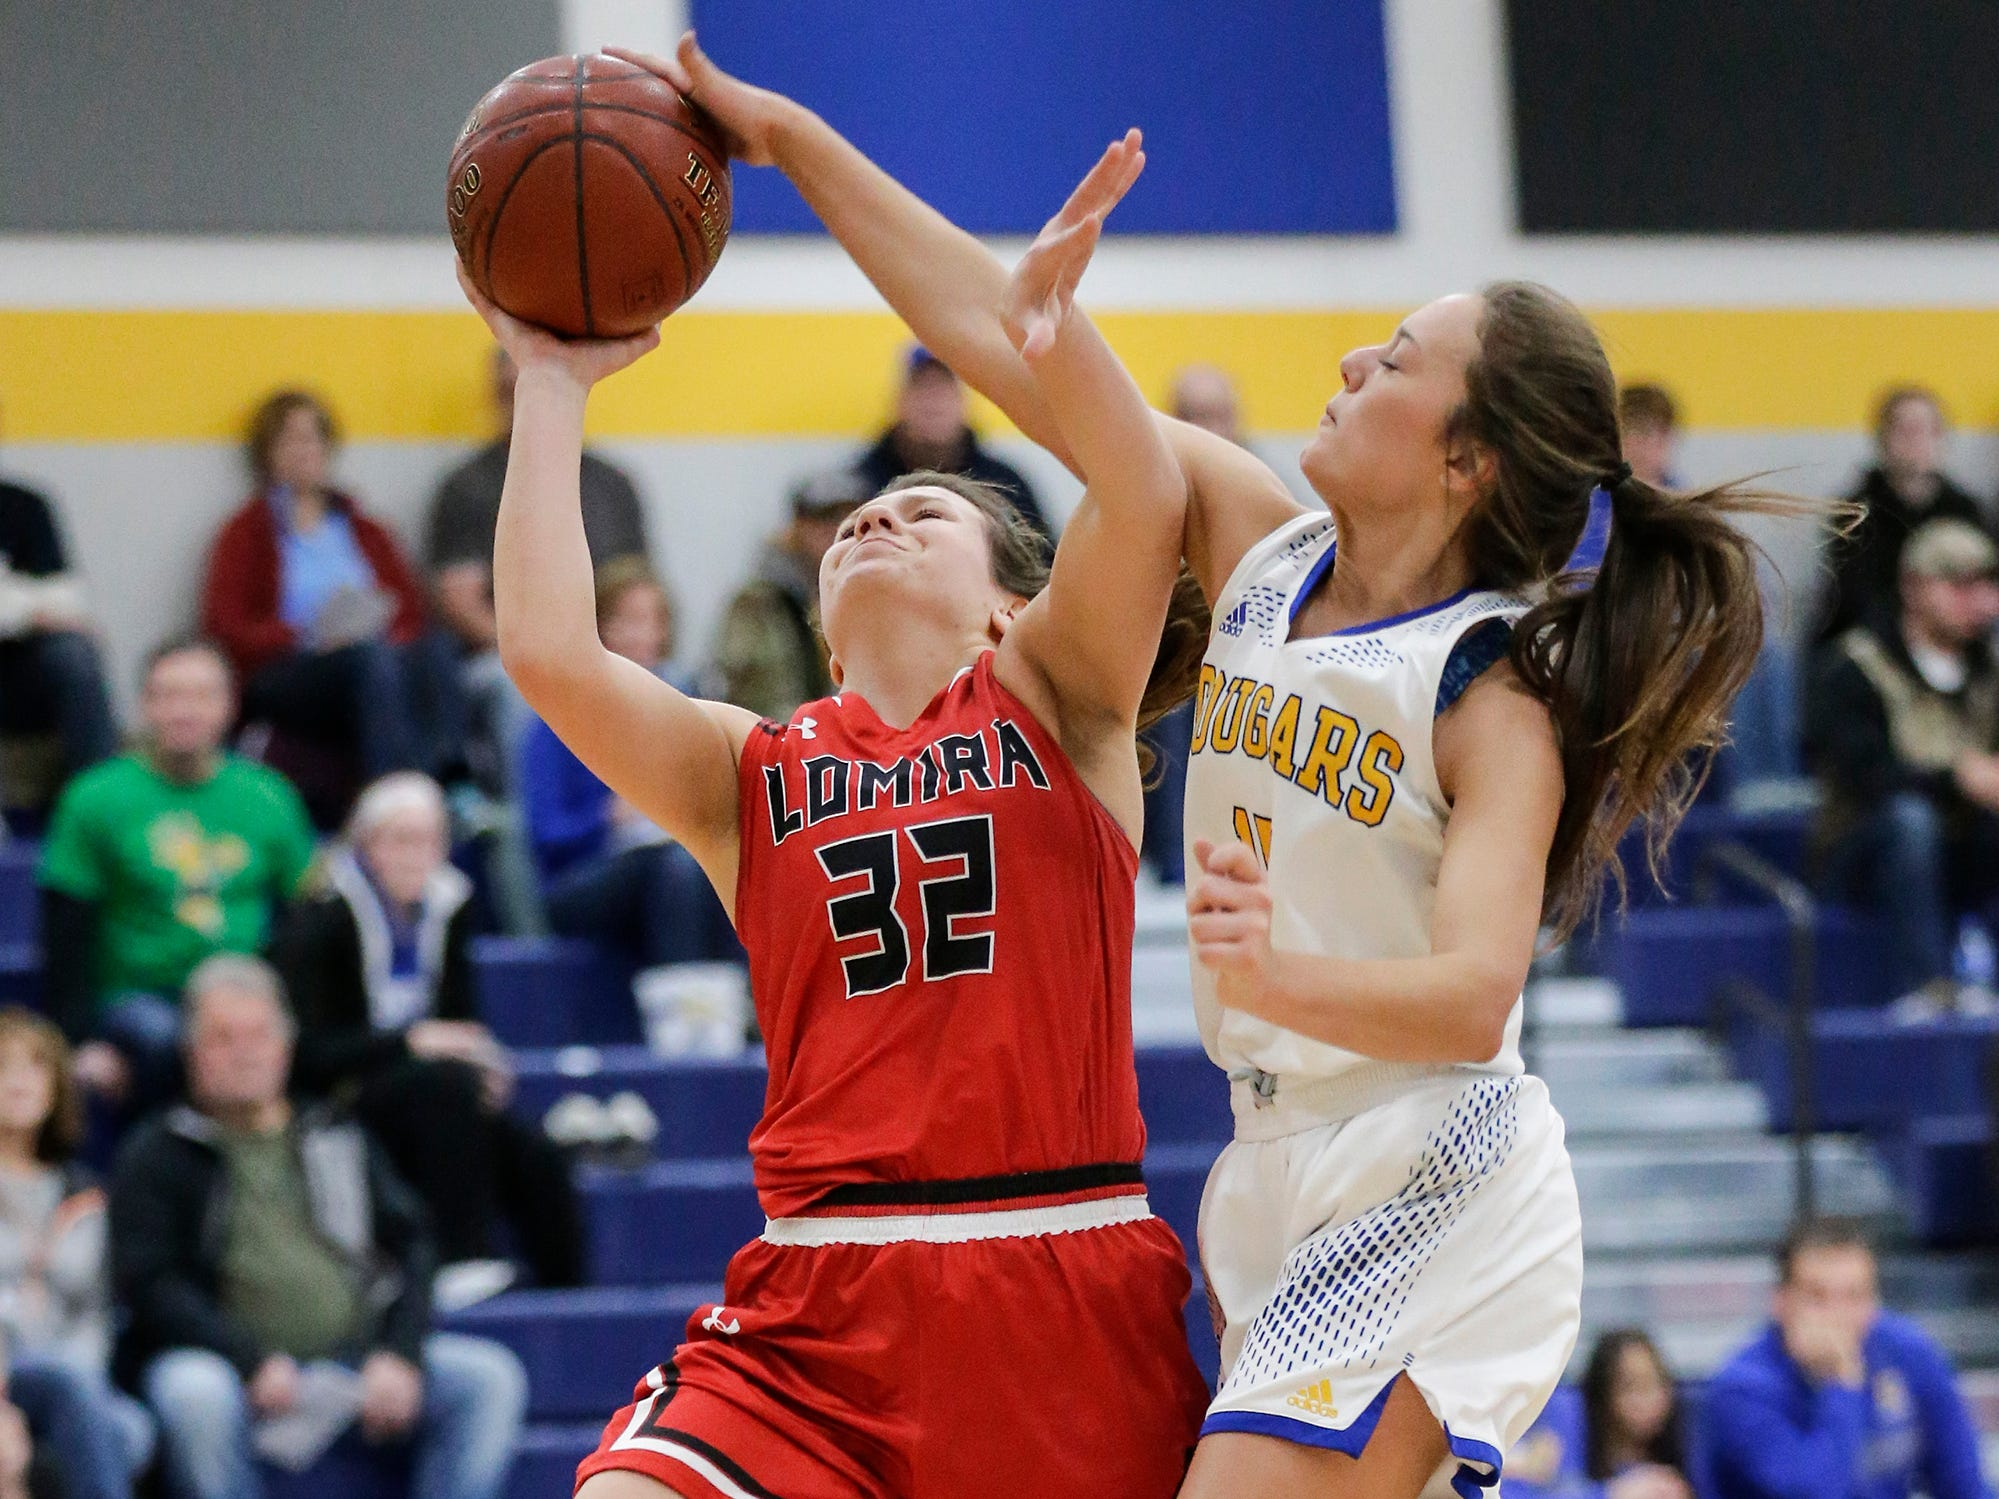 Lomira High School girls basketball's Crystal Geiger gets fouled by Campbellsport High School's Grace Nerat during their game Friday, December 28, 2018 in Campbellsport.